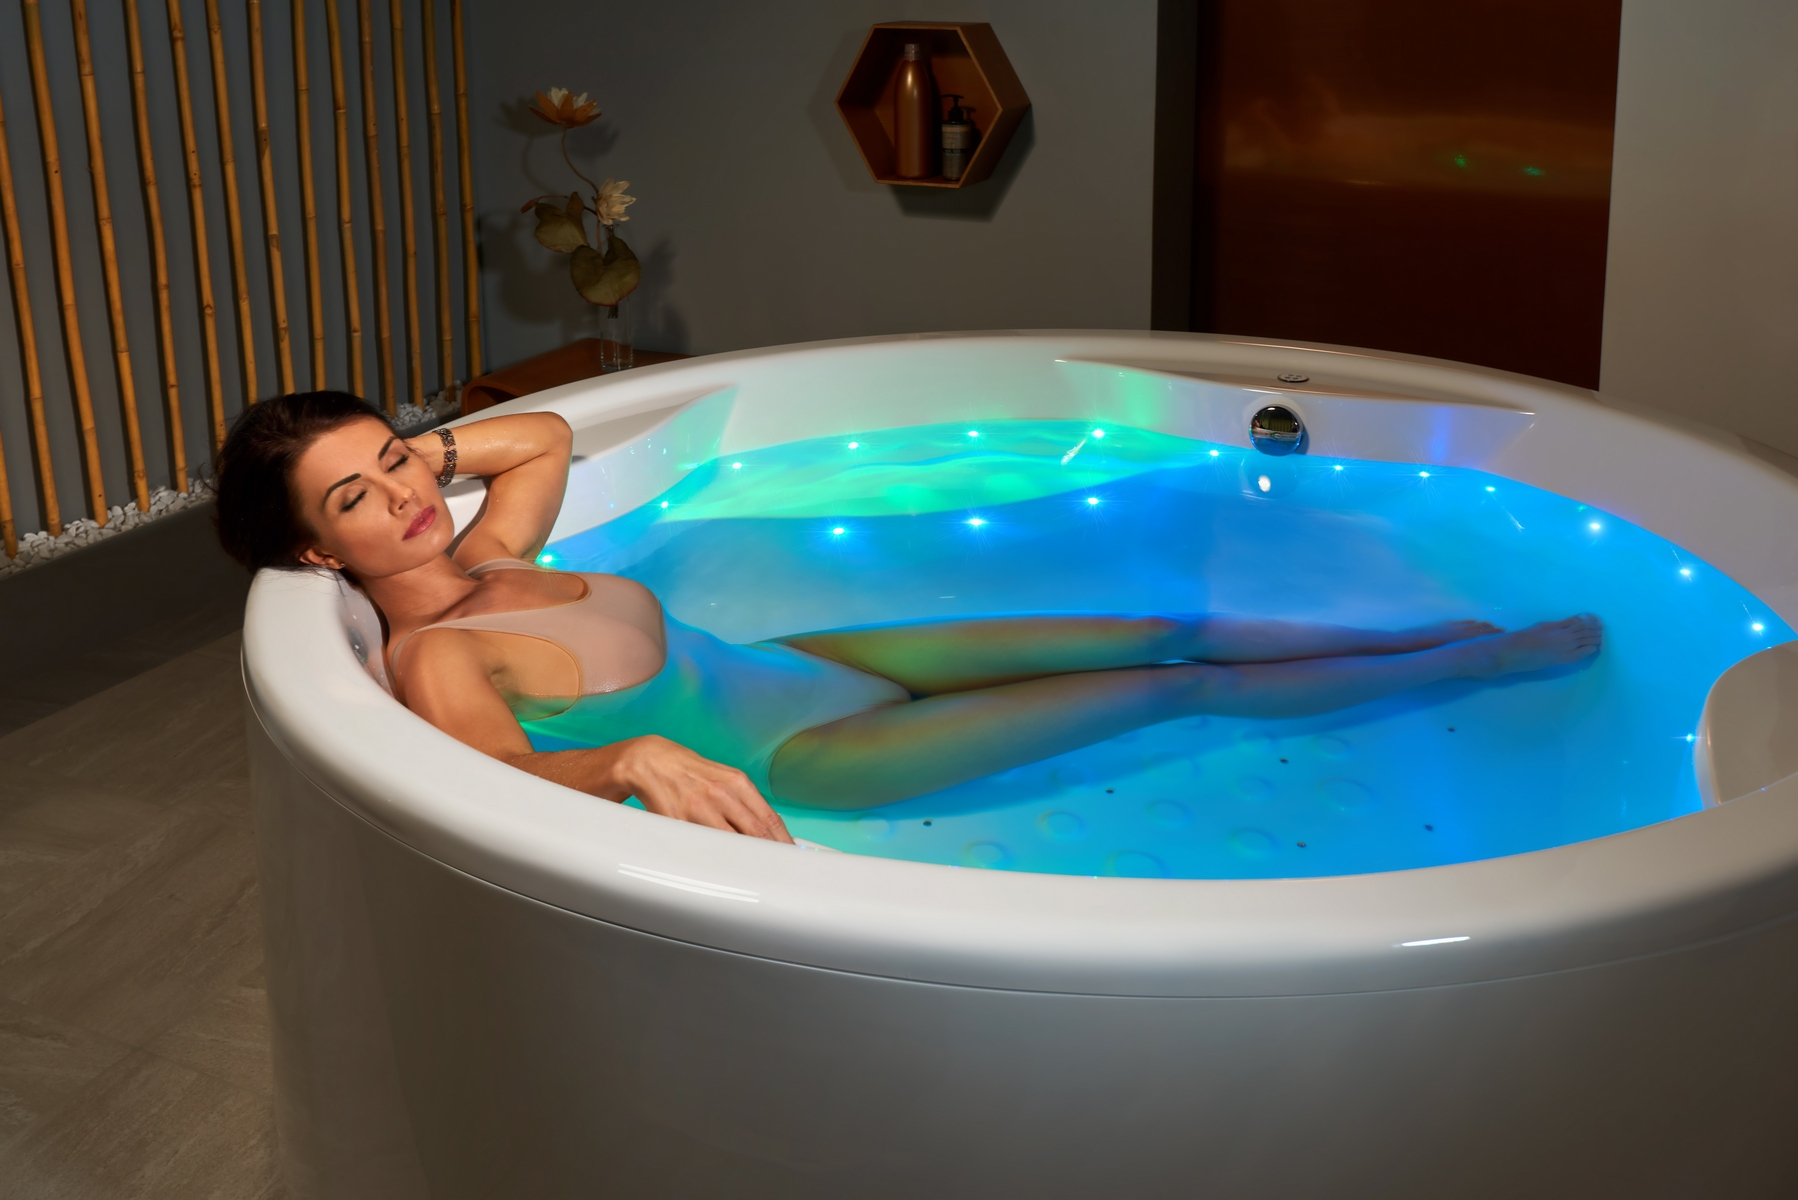 Aquatica Allegra-Wht Freestanding Relax Air Massage Bathtub